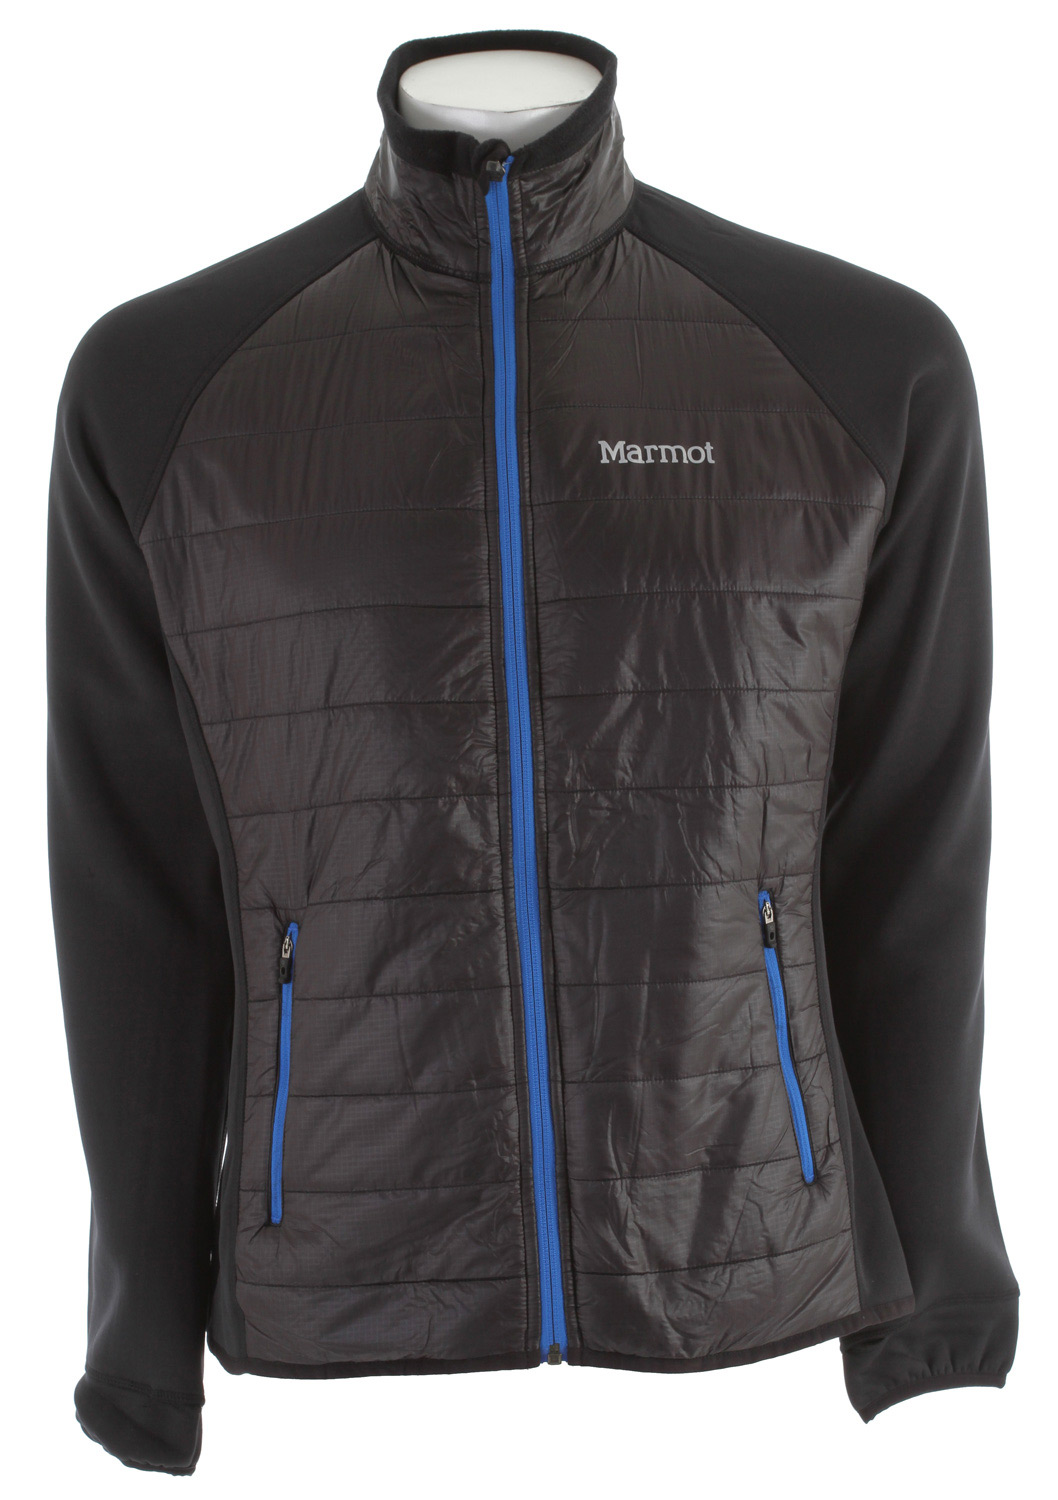 "Key Features of the Marmot Variant Insulated Jacket: Weight 0lb 12.8oz (363g) Materials PolartecPower Stretch 88% Polyester, 12% Elastane 6.8 oz/yd "" 100% Nylon Ripstop DWR 0.8 oz/yd Insulation Thermal R Eco Full Zip Jacket with Thermal R Eco Insulation at Front Body Polartec Power Stretch Panels at Side Torso, Sleeves and Back Thumbholes Lightweight Stretch Binding at Cuffs and Bottom Hem Front Hand Zip Pockets, Reflective Logos Athletic Fit 27 1/4"" Center Back Length for Size Medium - $104.95"